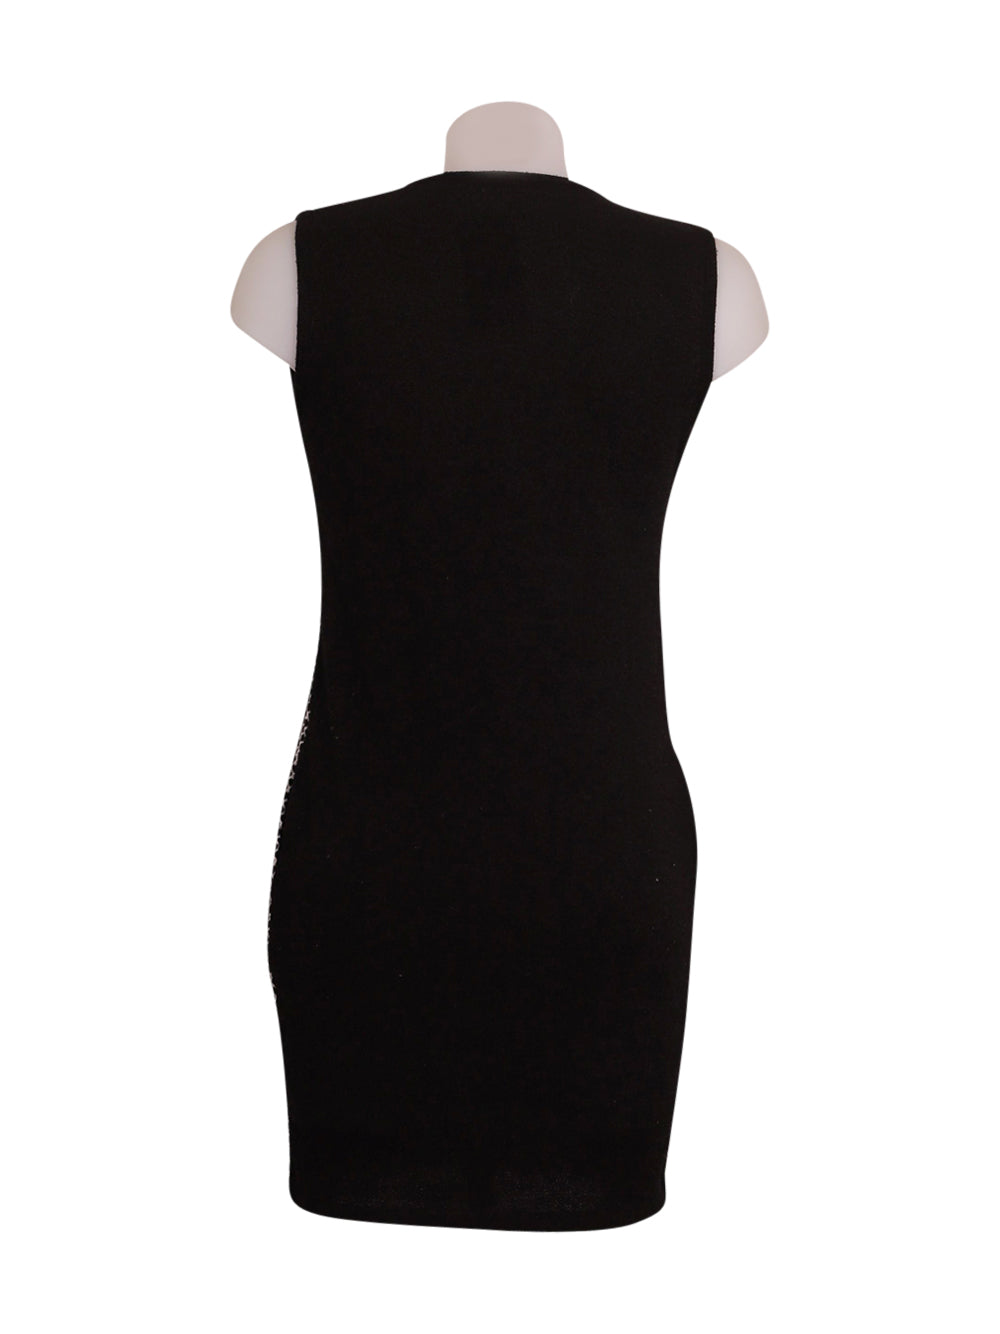 Back photo of Preloved Amelie Reveur Black Woman's dress - size 8/S